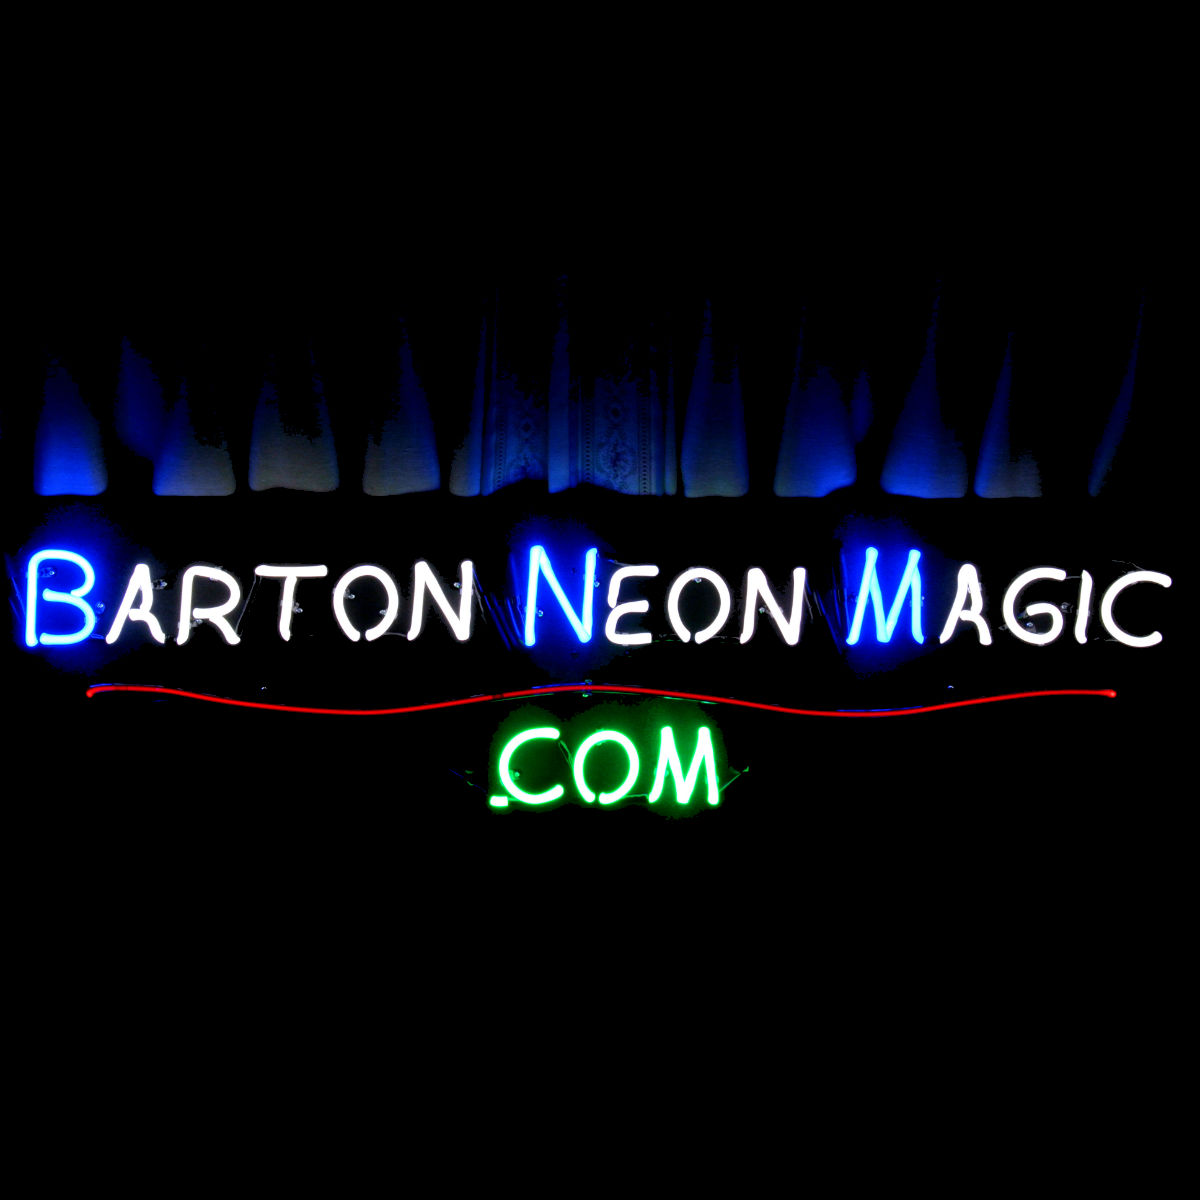 Designer Neon Lighting by John Barton - BartonNeonMagic.com